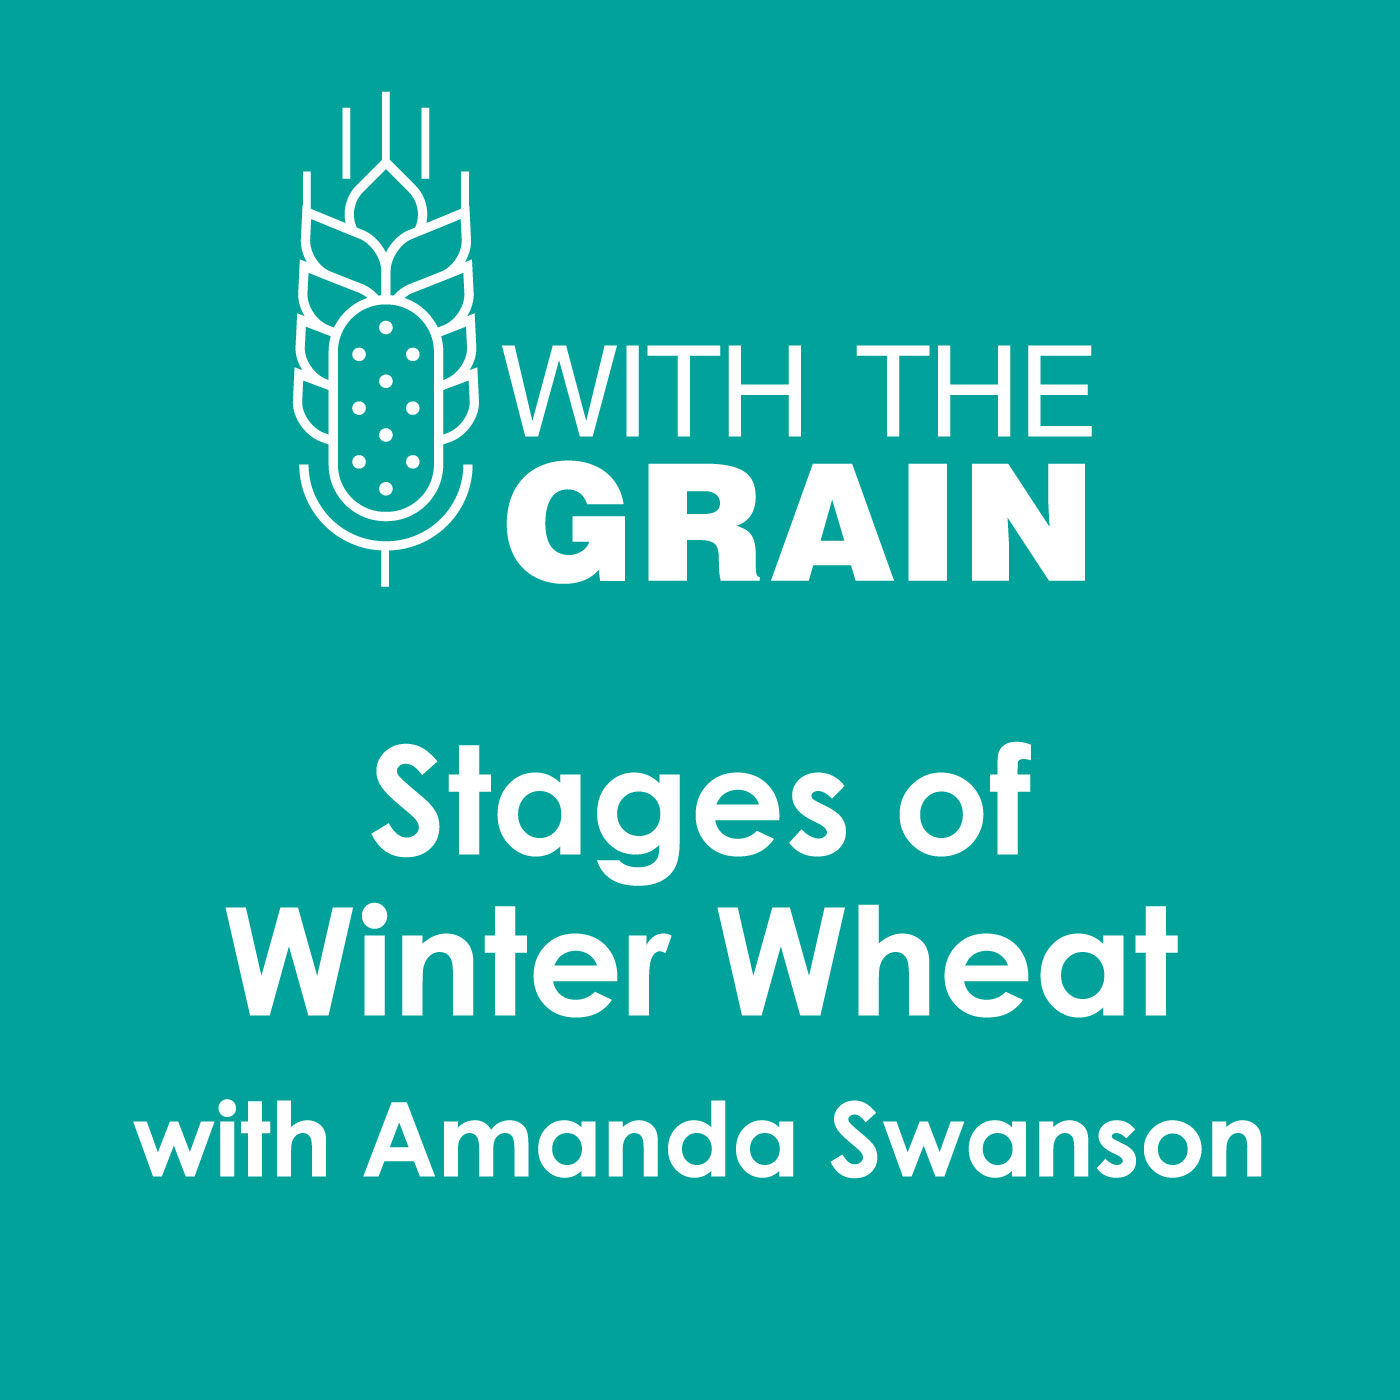 Stages of Winter Wheat, with Amanda Swanson